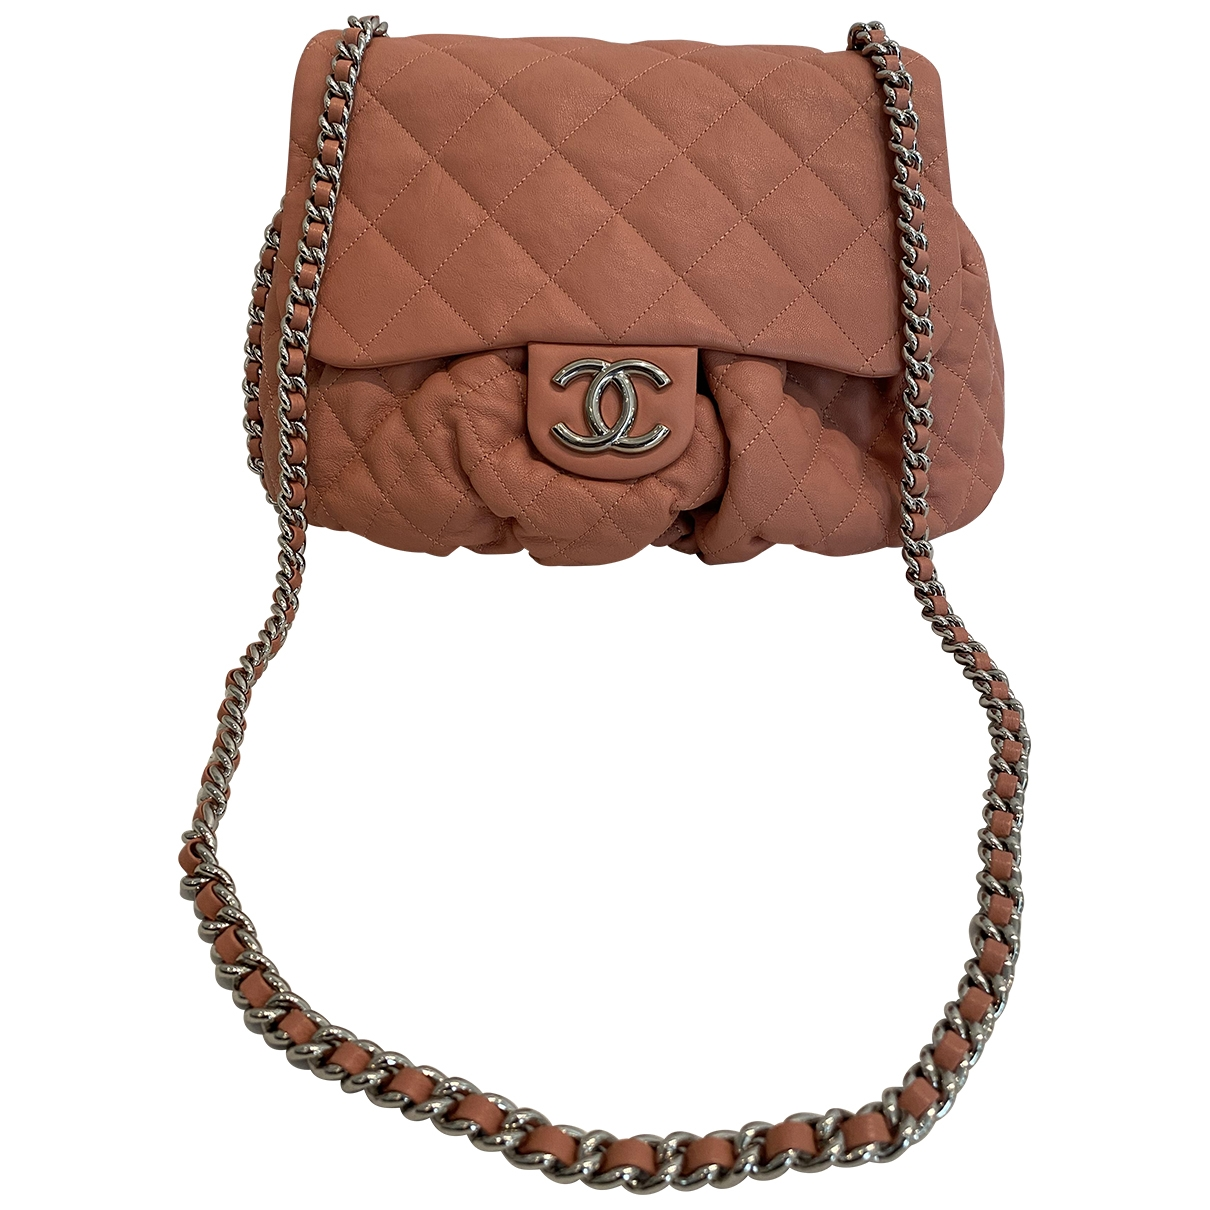 Bolso  Chain Around de Cuero Chanel